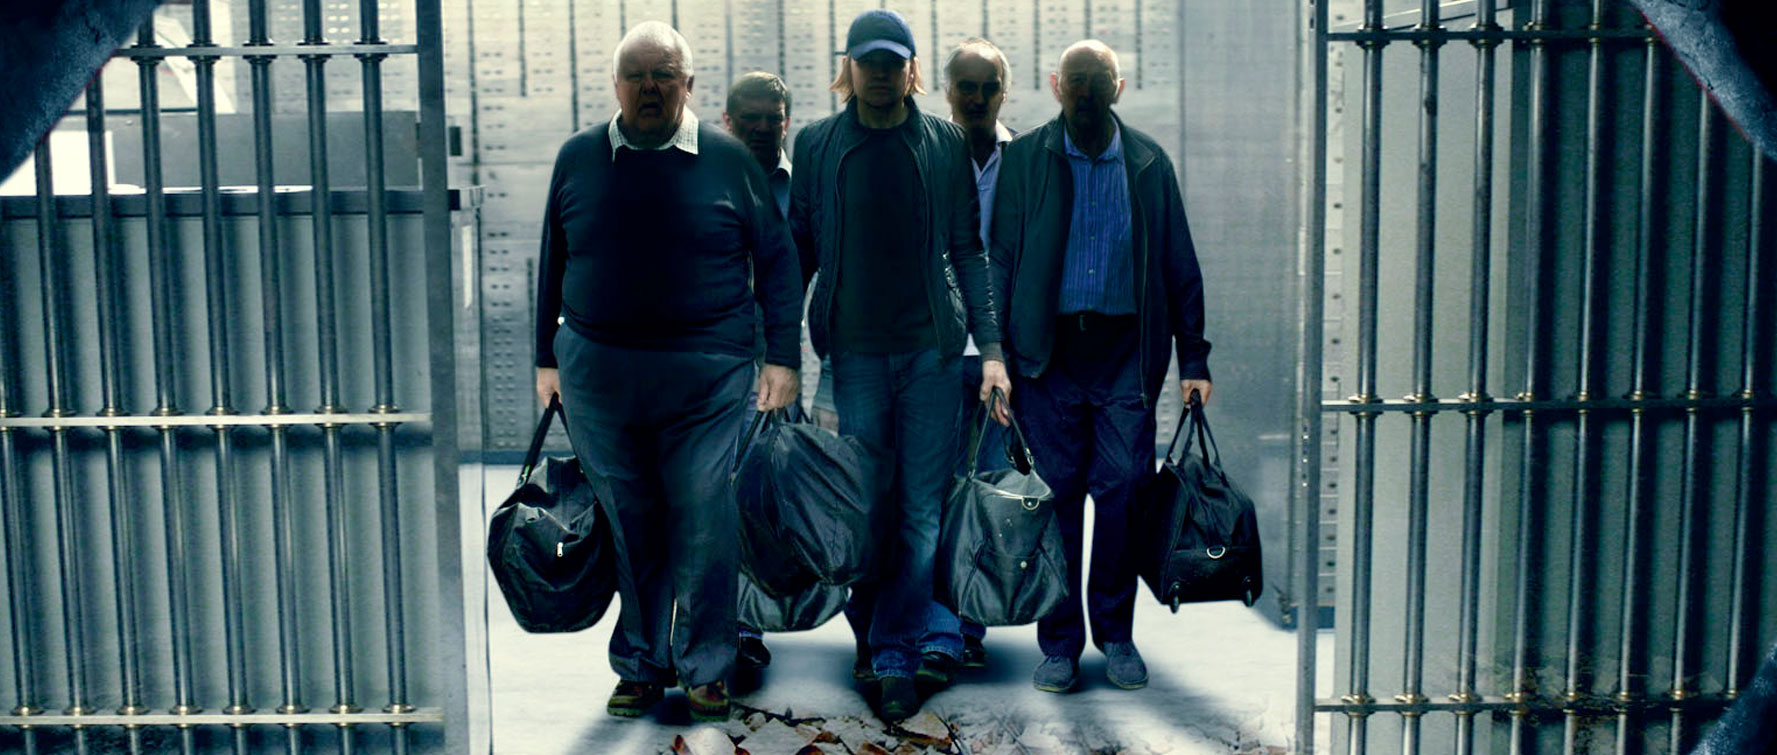 Hatton Garden the Heist